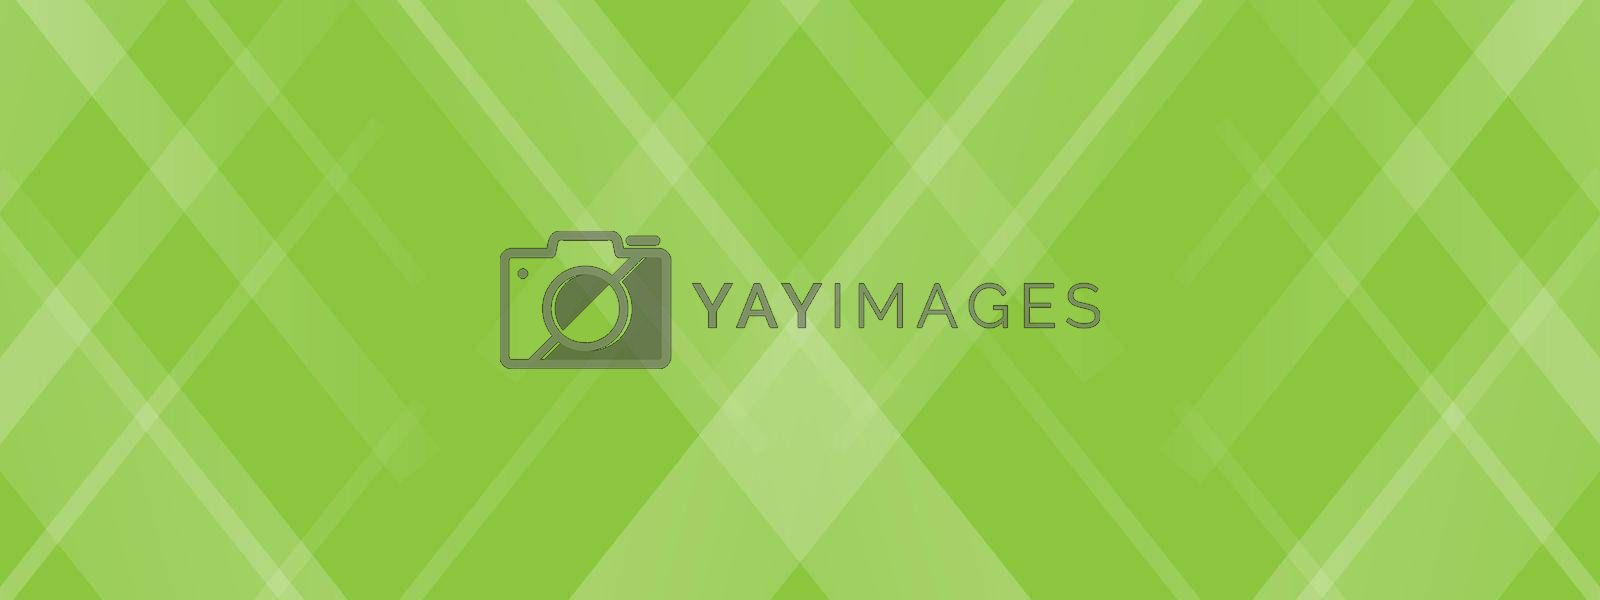 Abstract background in green shades for banners, posters, postcards and creative design for texture, textiles, packaging and simple backgrounds. Flat Style